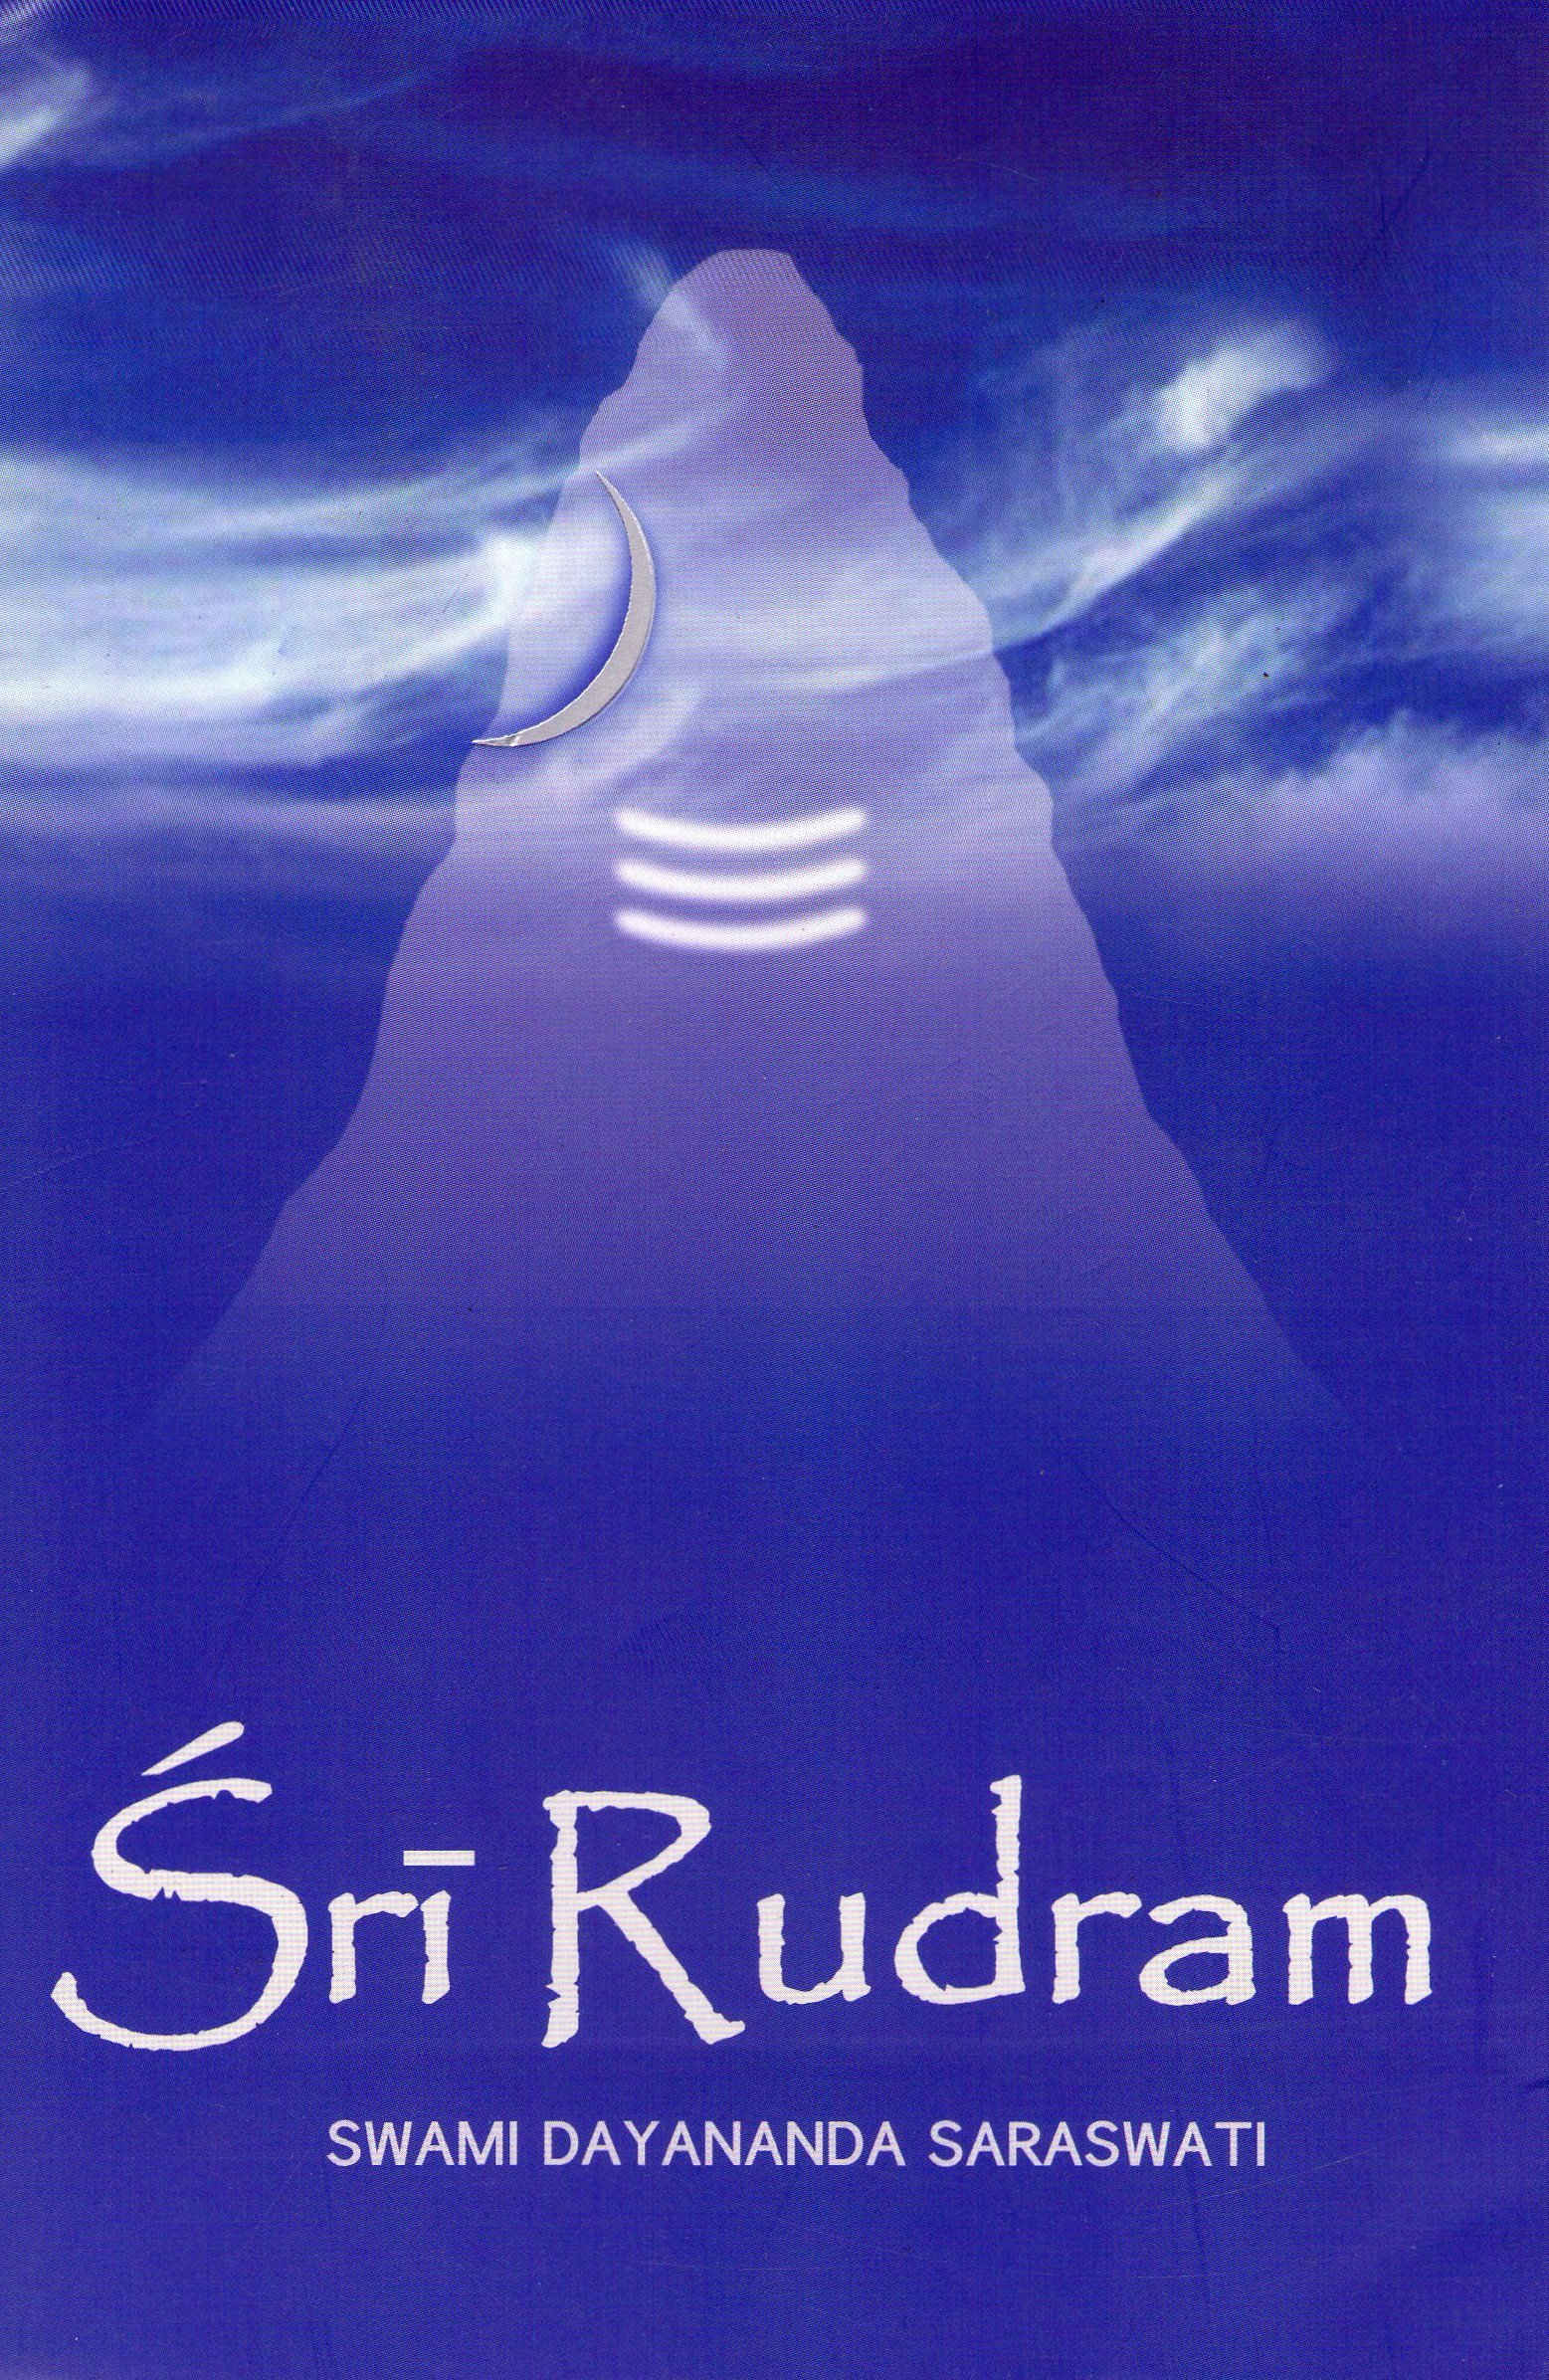 Buy sri rudram book online at low prices in india sri rudram buy sri rudram book online at low prices in india sri rudram reviews ratings amazon fandeluxe